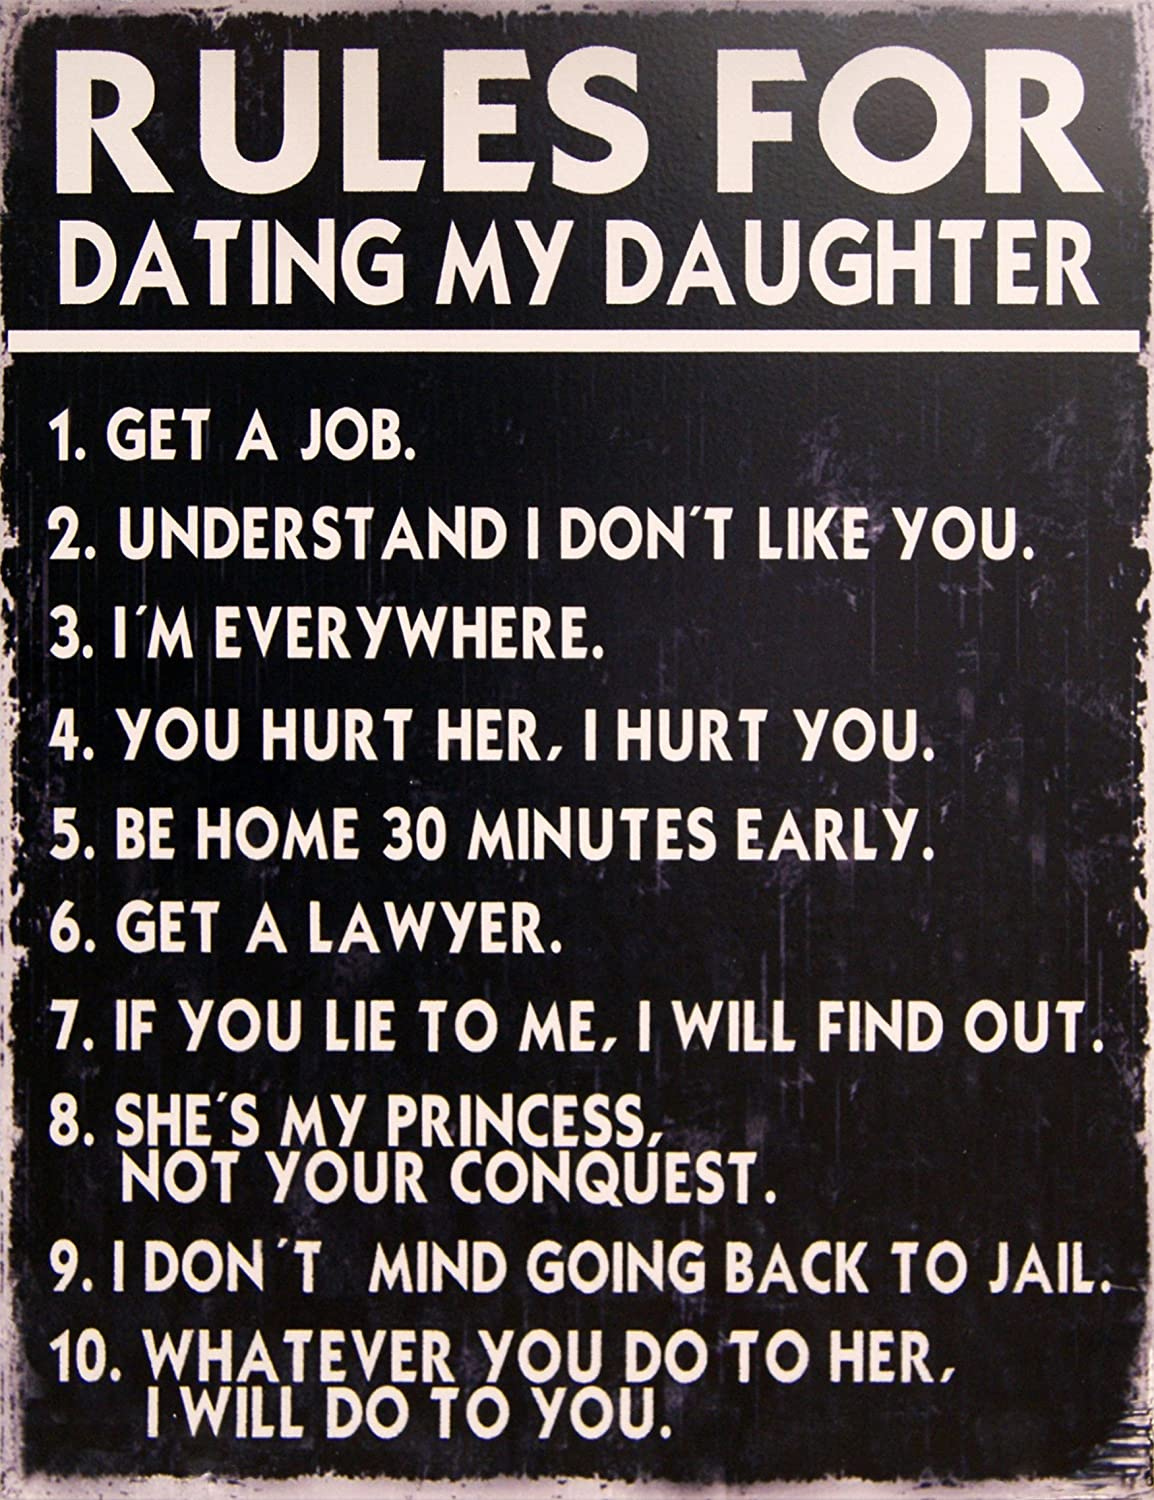 daiting application for dating my daughter